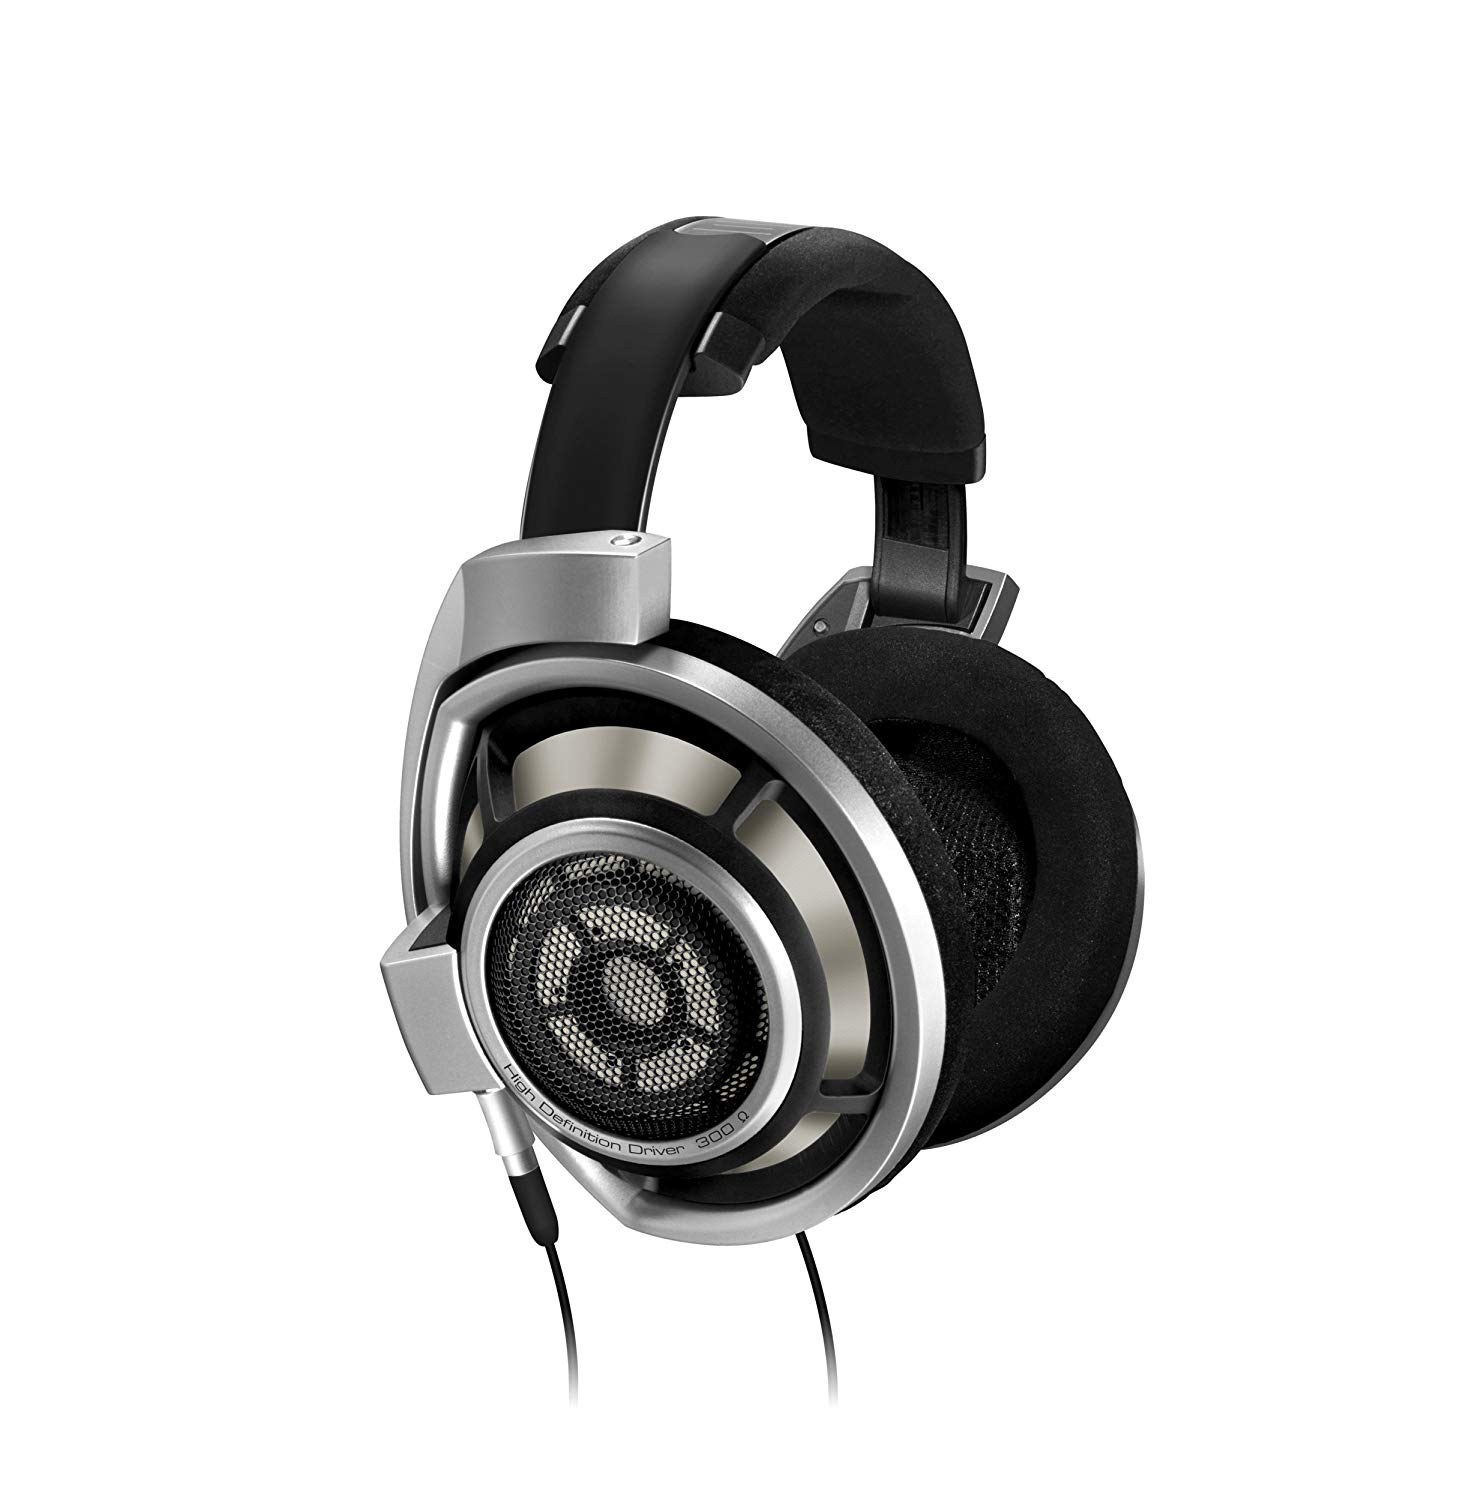 Sennheiser HD 800 On a white surface